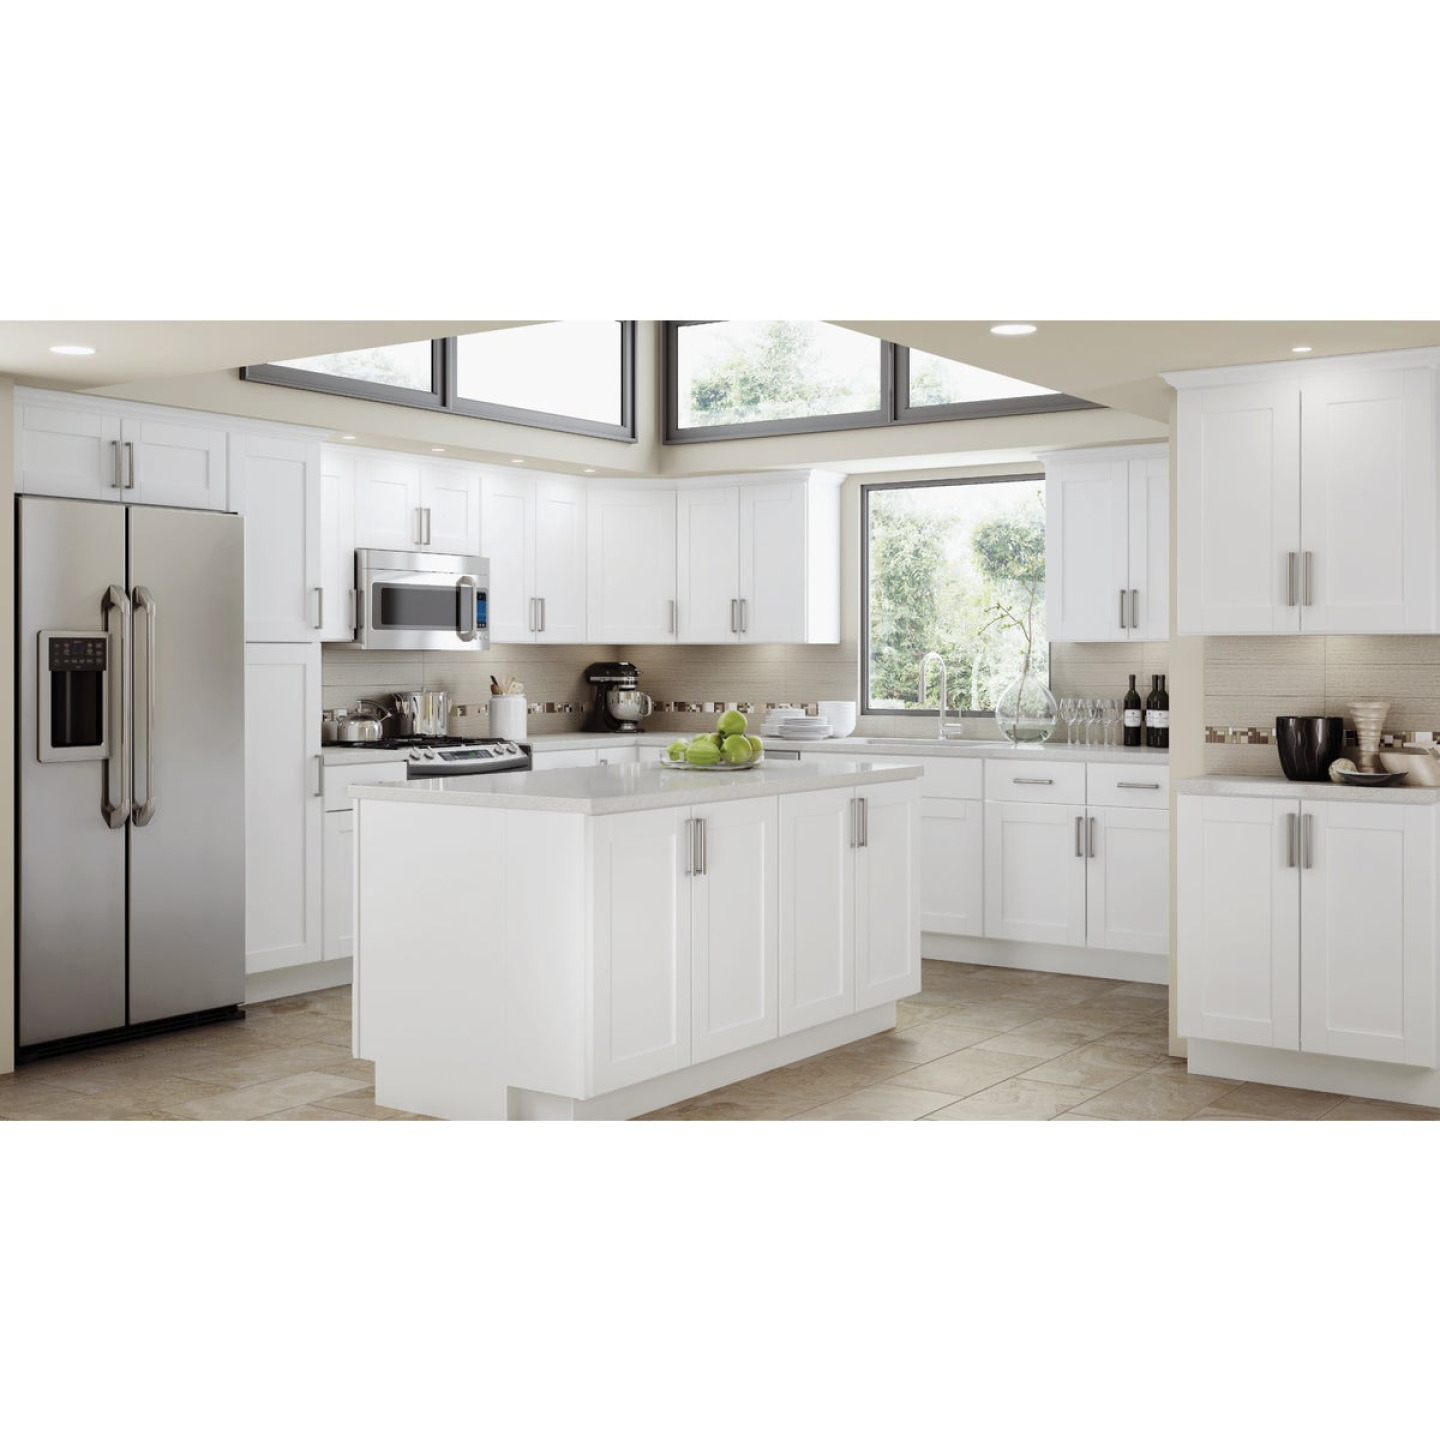 Continental Cabinets Andover Shaker 36 In. W x 34-1/2 In. H x 24 In. D White Thermofoil Sink Base Kitchen Cabinet Image 2